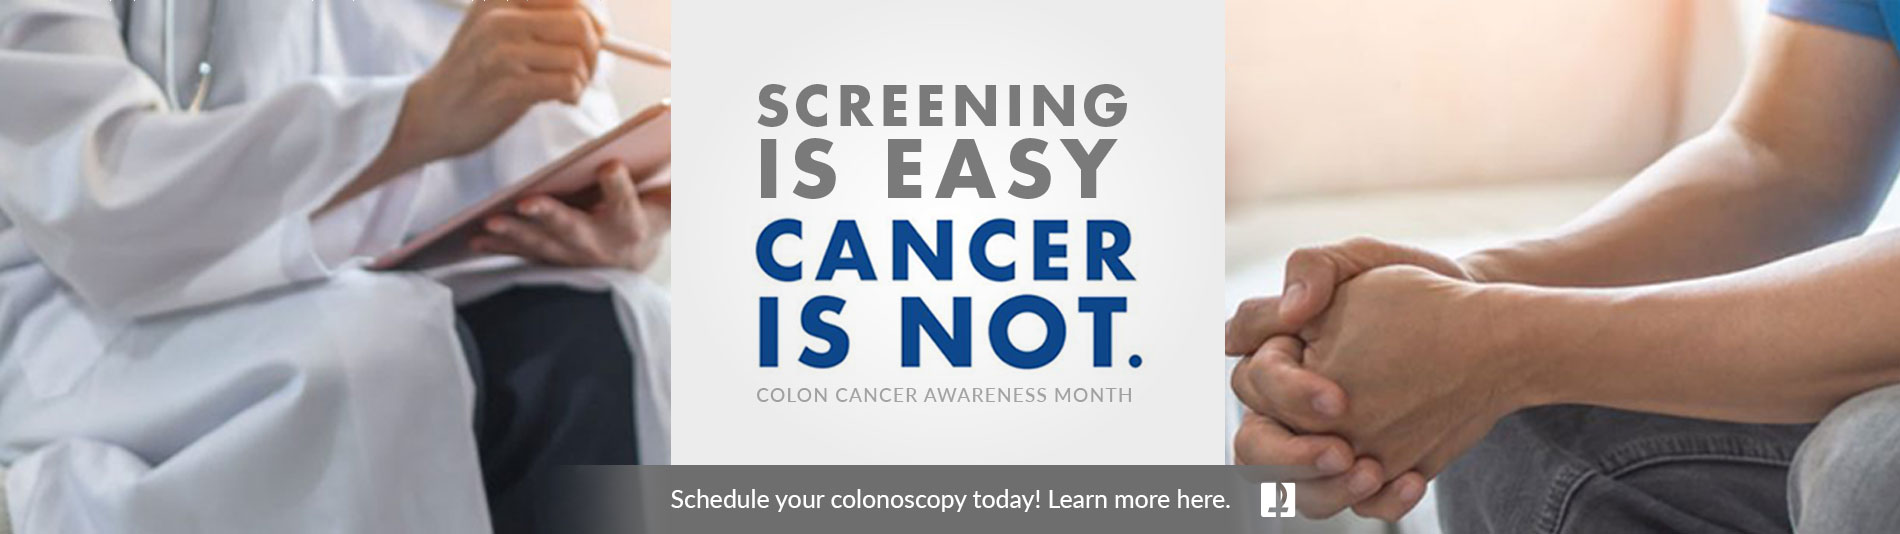 Screening is Easy, Cancer is Not